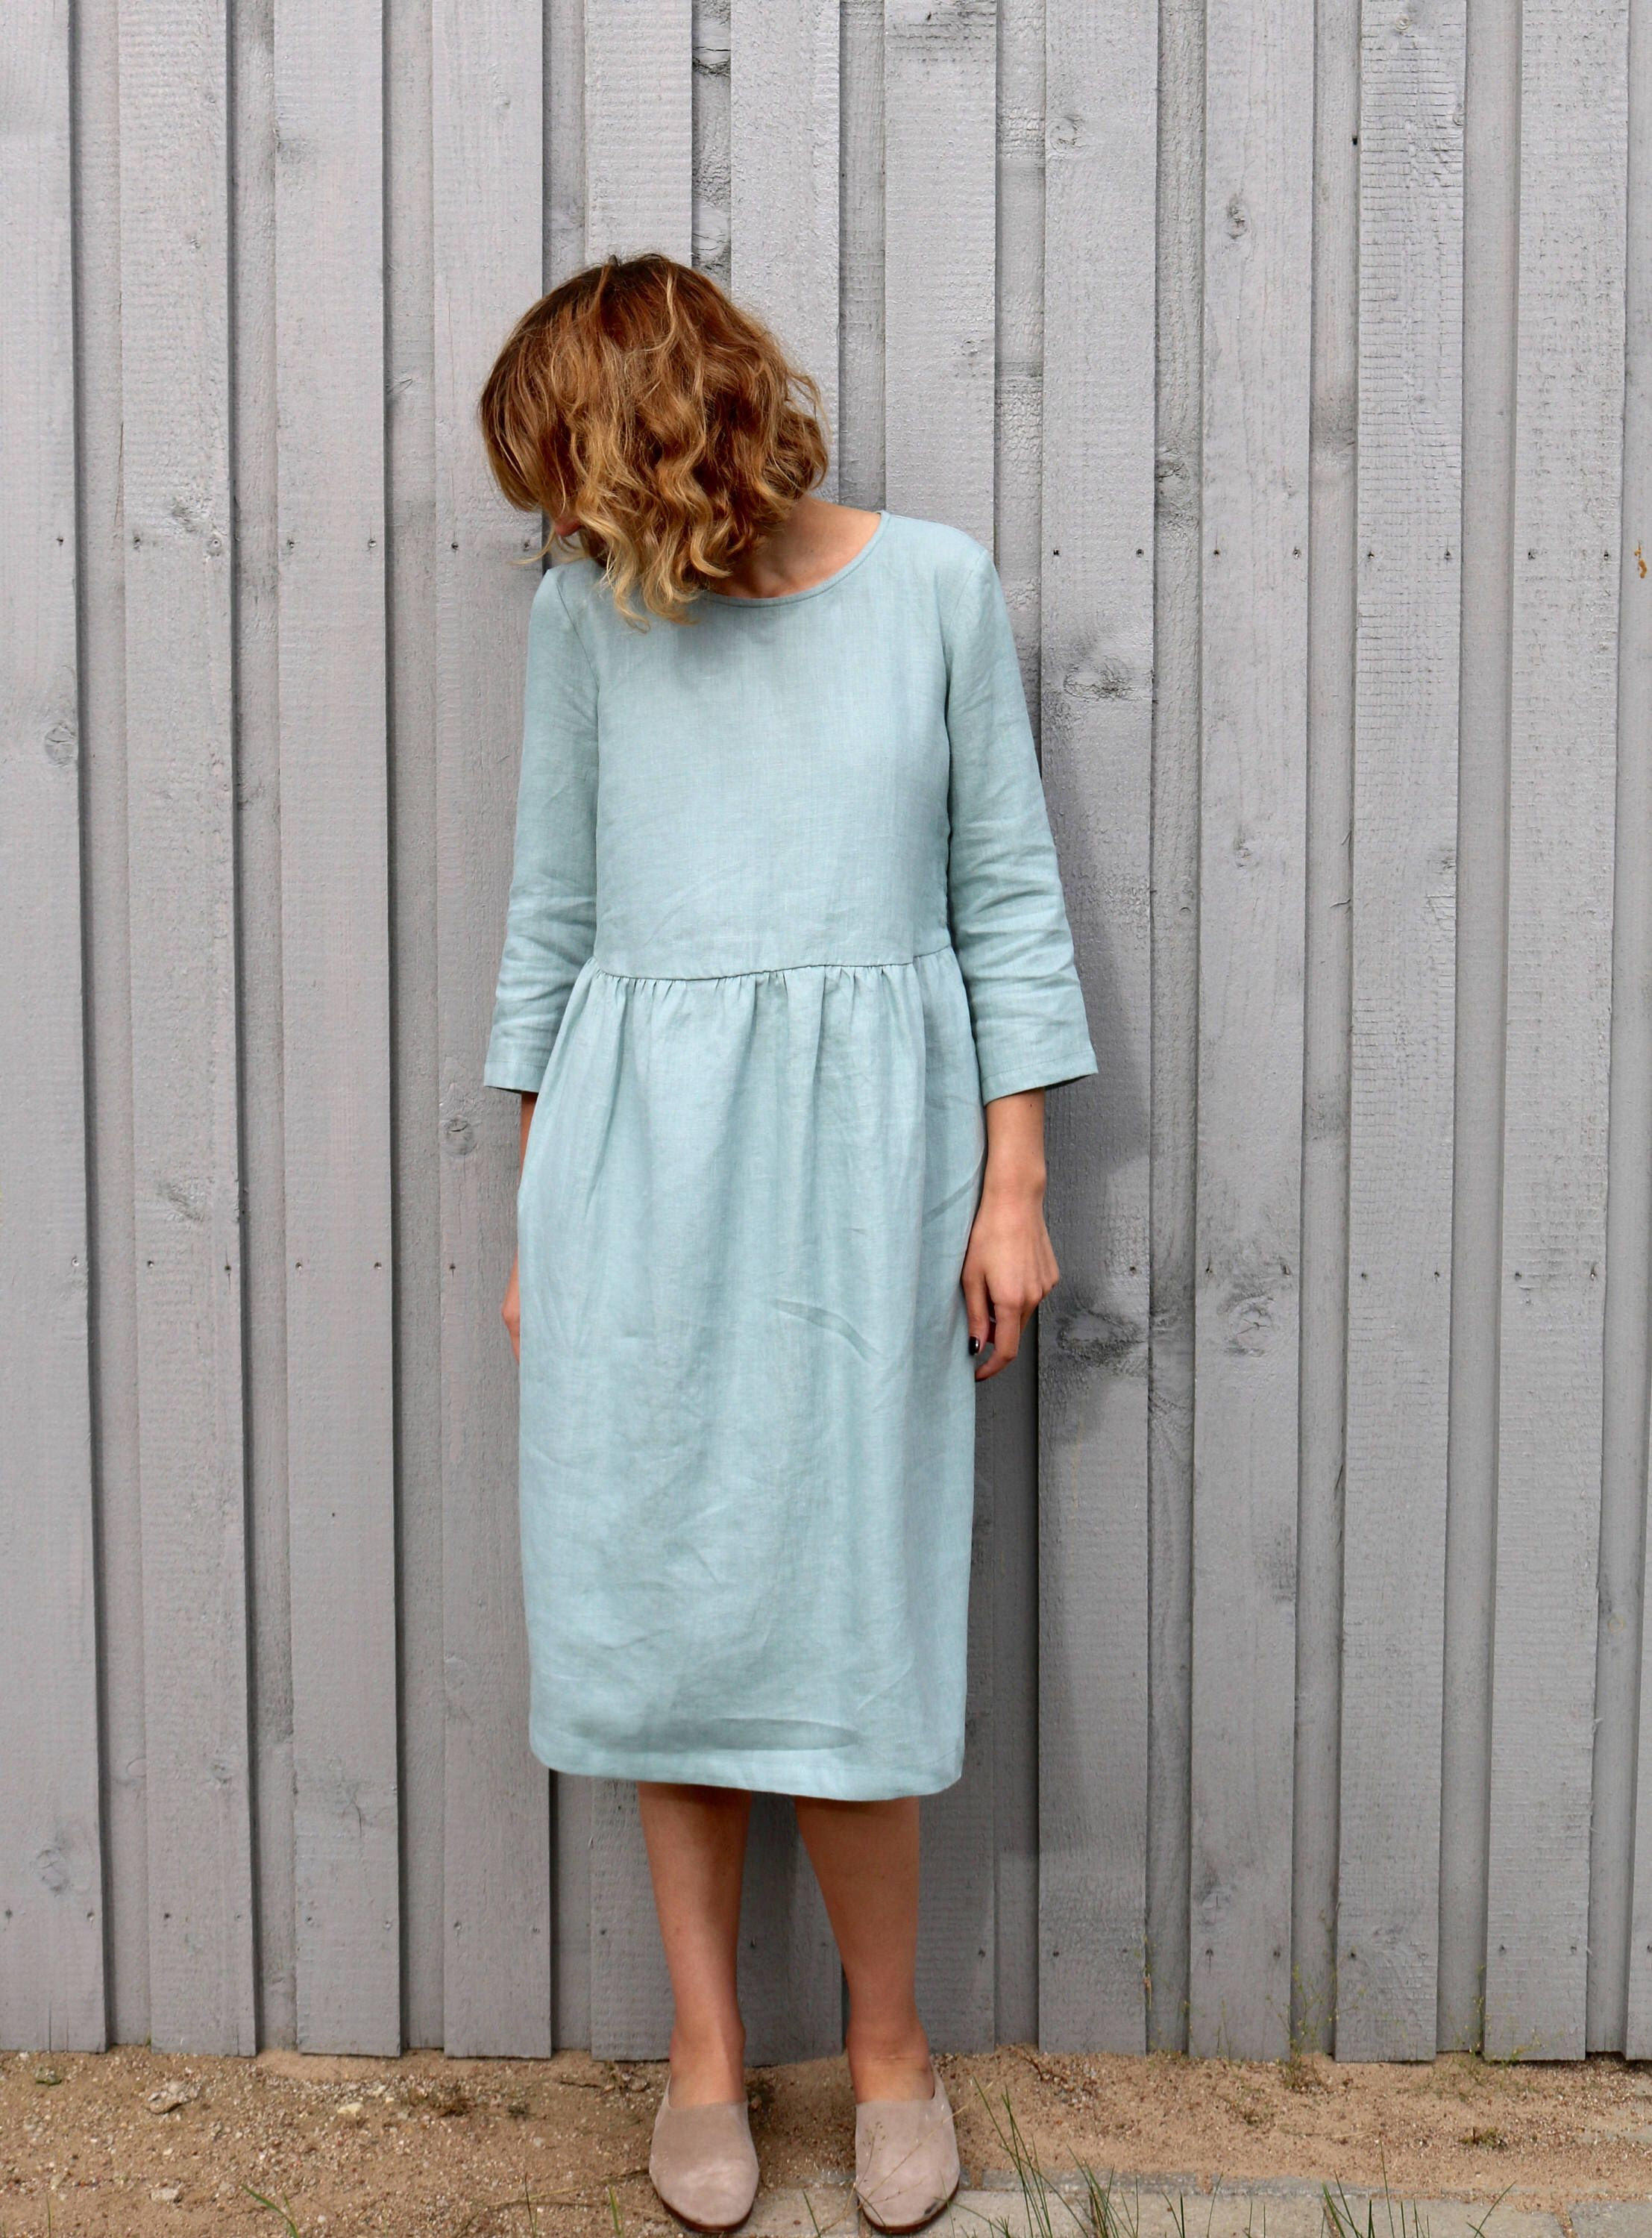 aa2be7679e1 Linen Dress - Cloudy Sky Fall Linen Dress - Loose Fit Linen Dress ...